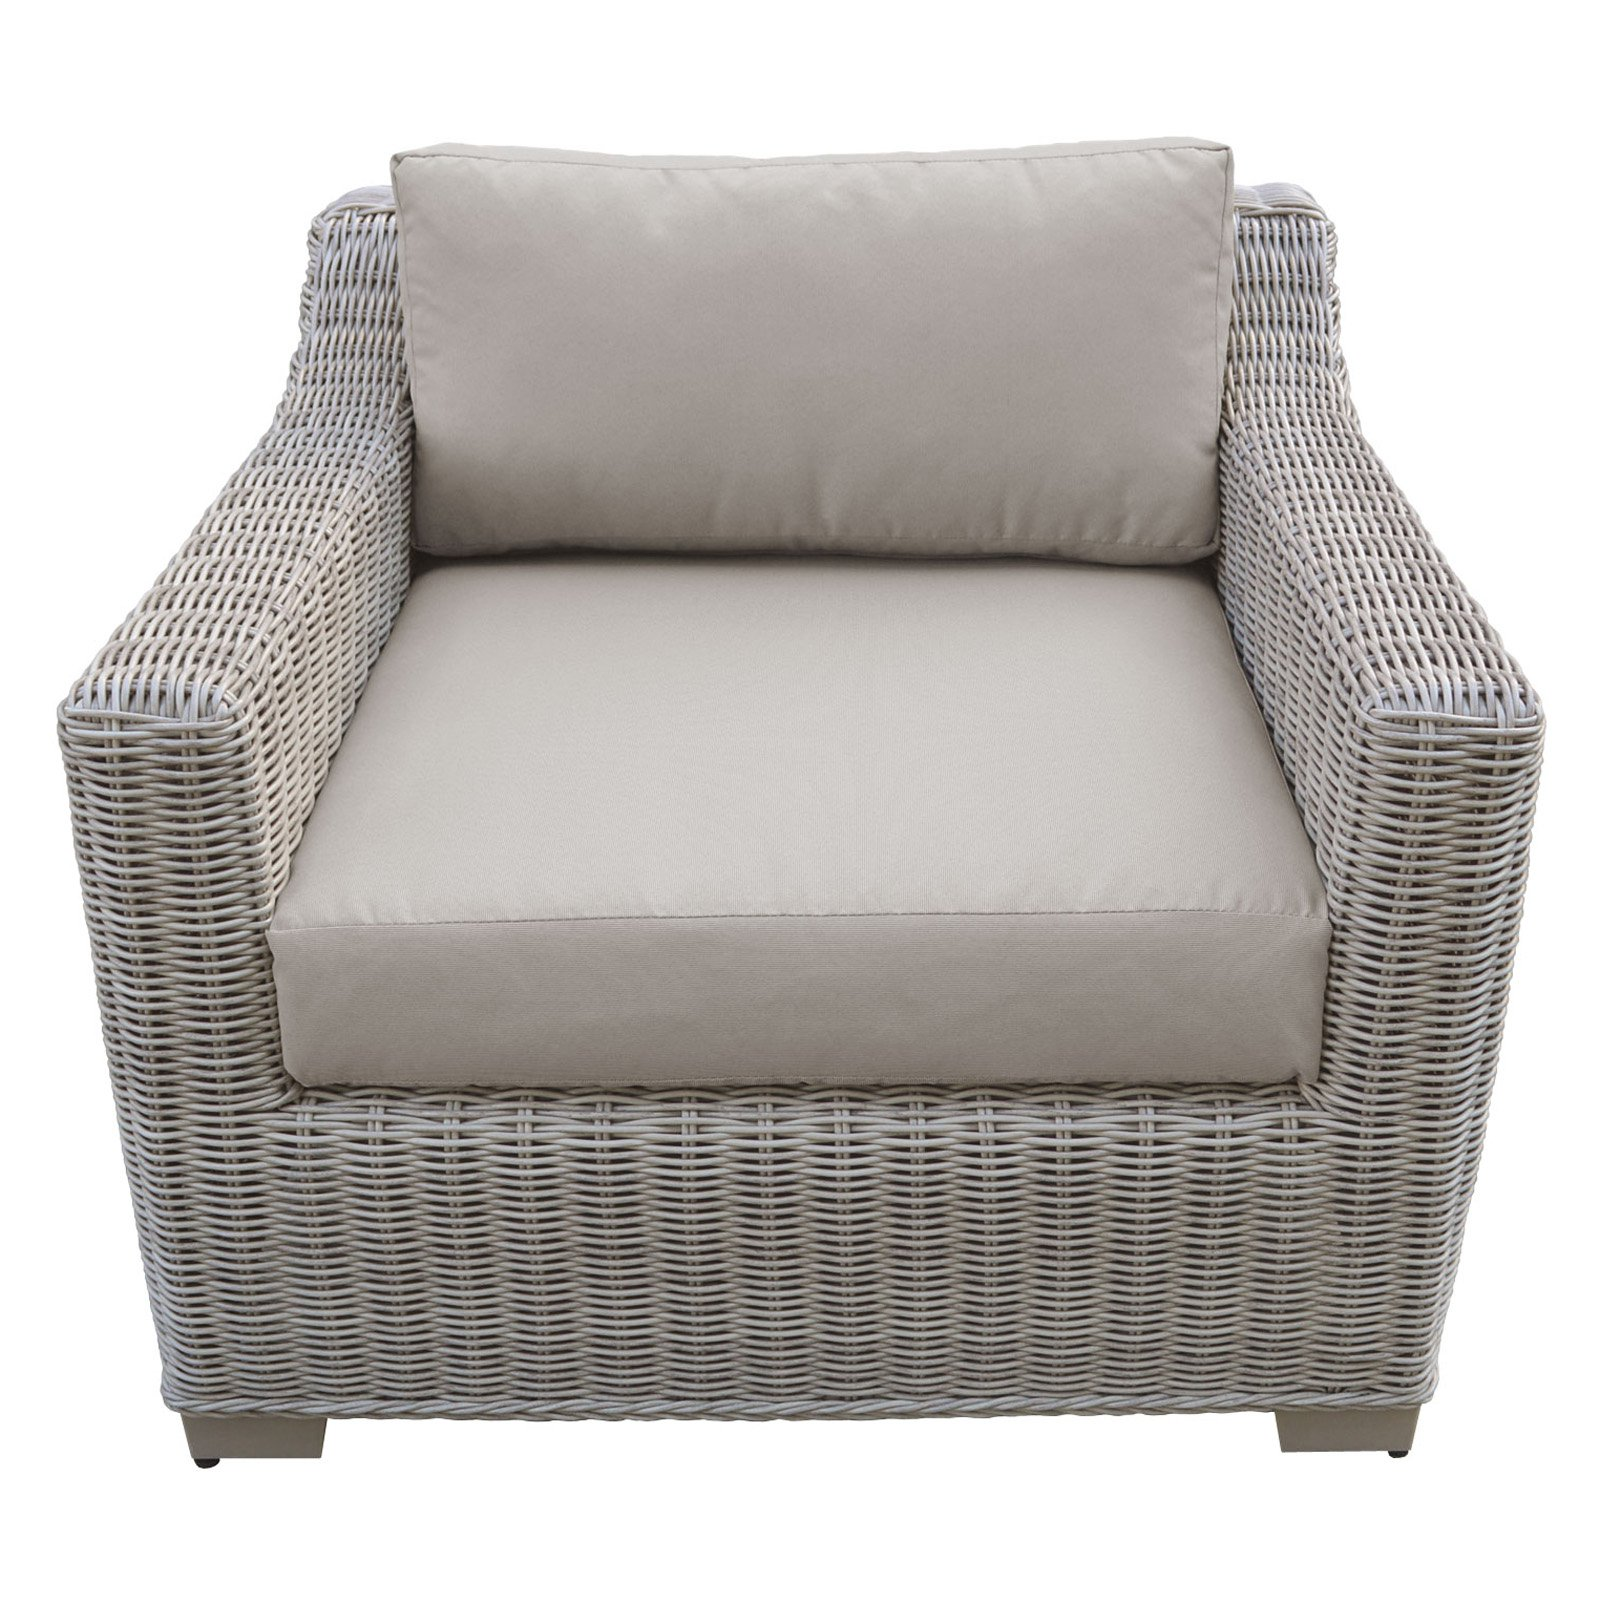 Outdoor Tk Classics Coast Wicker Patio Club Chair Wheat In 2019